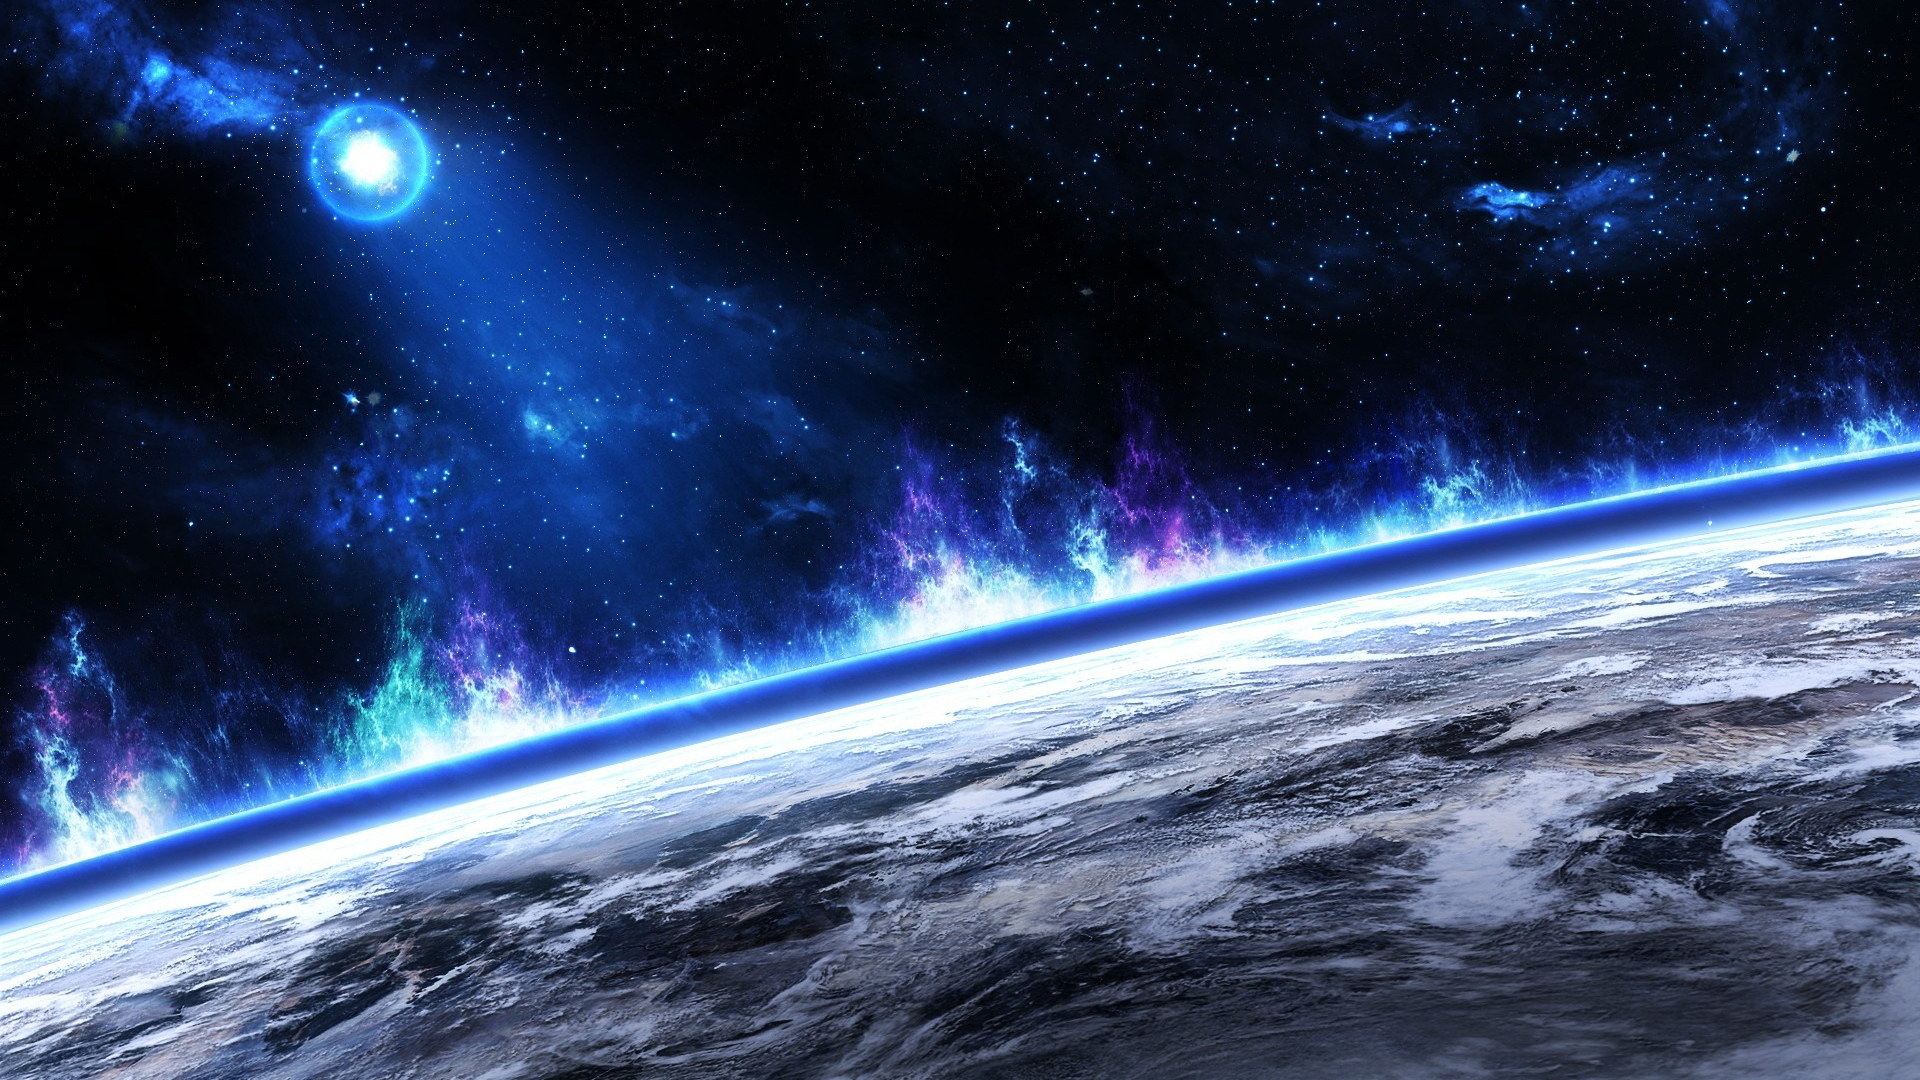 1920x1080 Hd Wallpaper Background Image: Planetscape HD Wallpaper